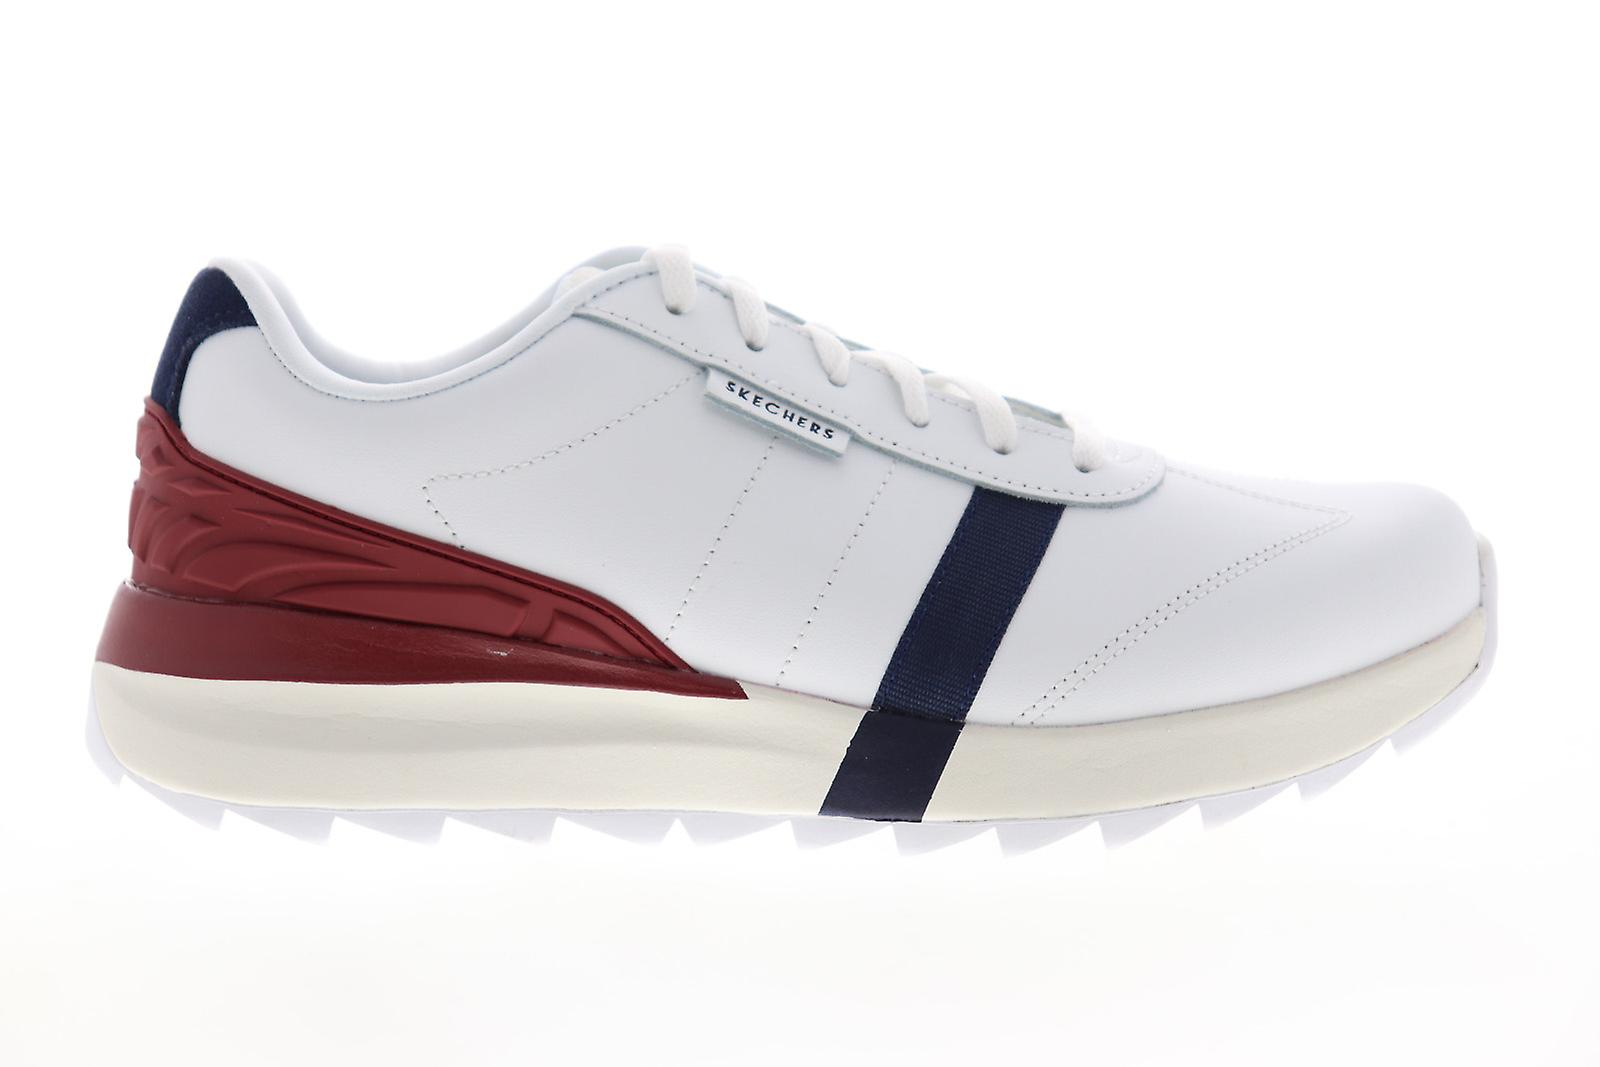 Skechers Speedtooth Hommes White Leather Lace Up Low Top Sneakers Chaussures